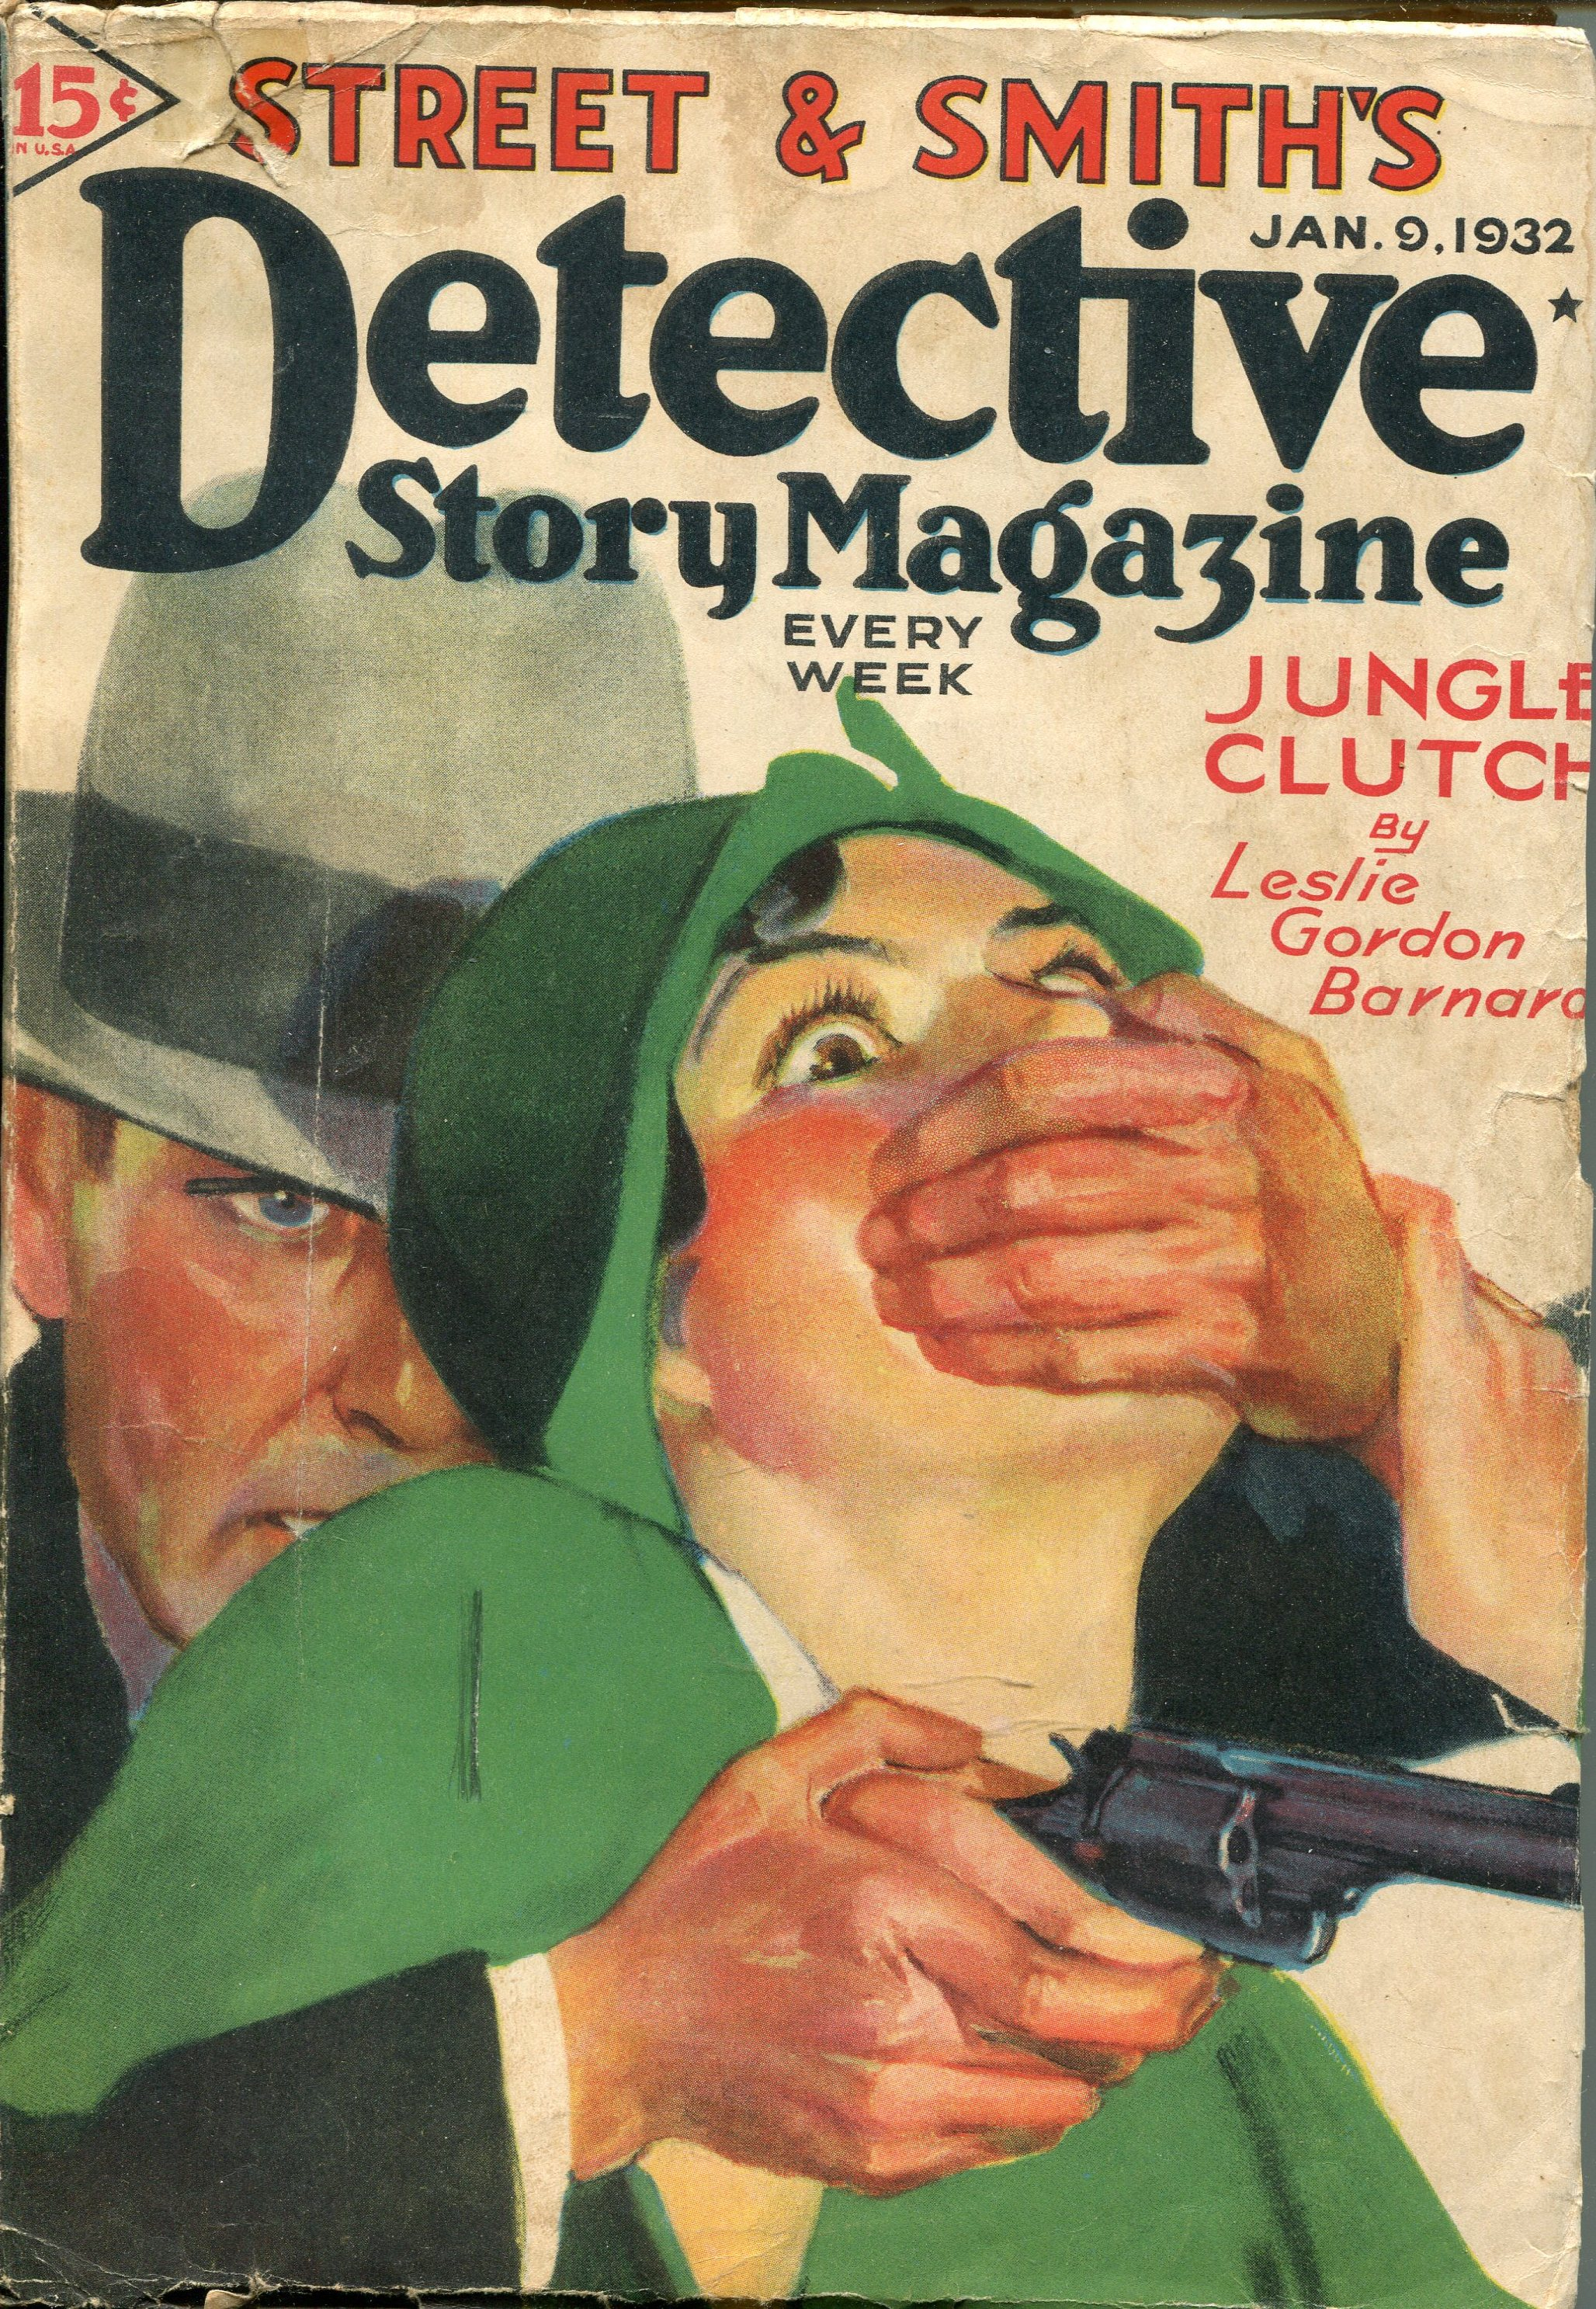 https://pulpcovers.com/wp-content/uploads/2015/11/Detective-Story-January-9-1932.jpg